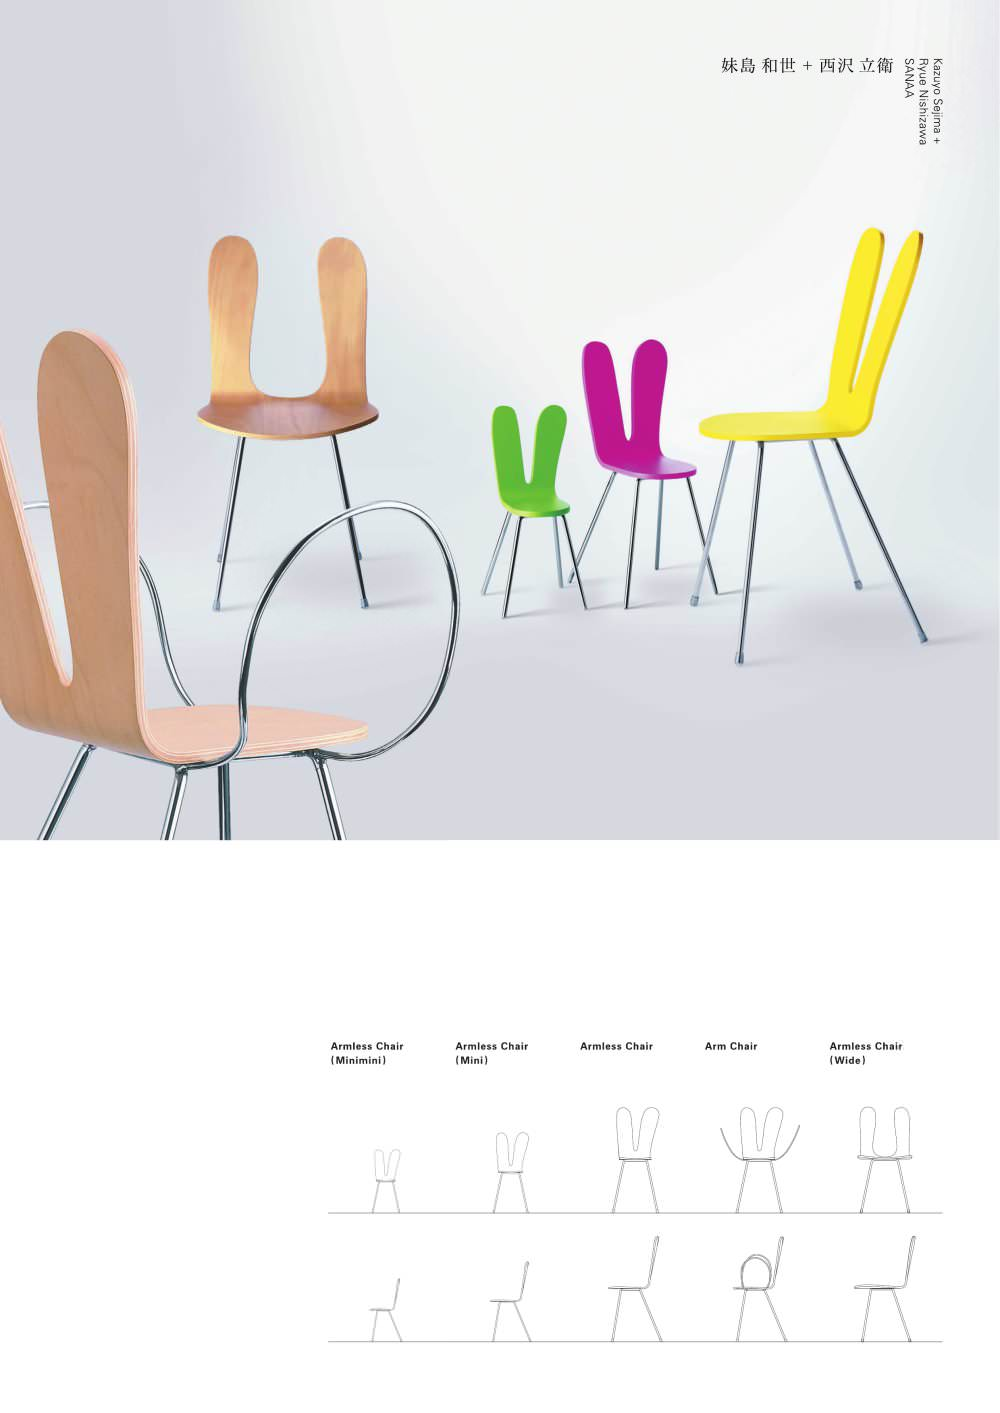 SANAA Armless Chairs Nextmaruni   1 / 2 Pages Design Ideas